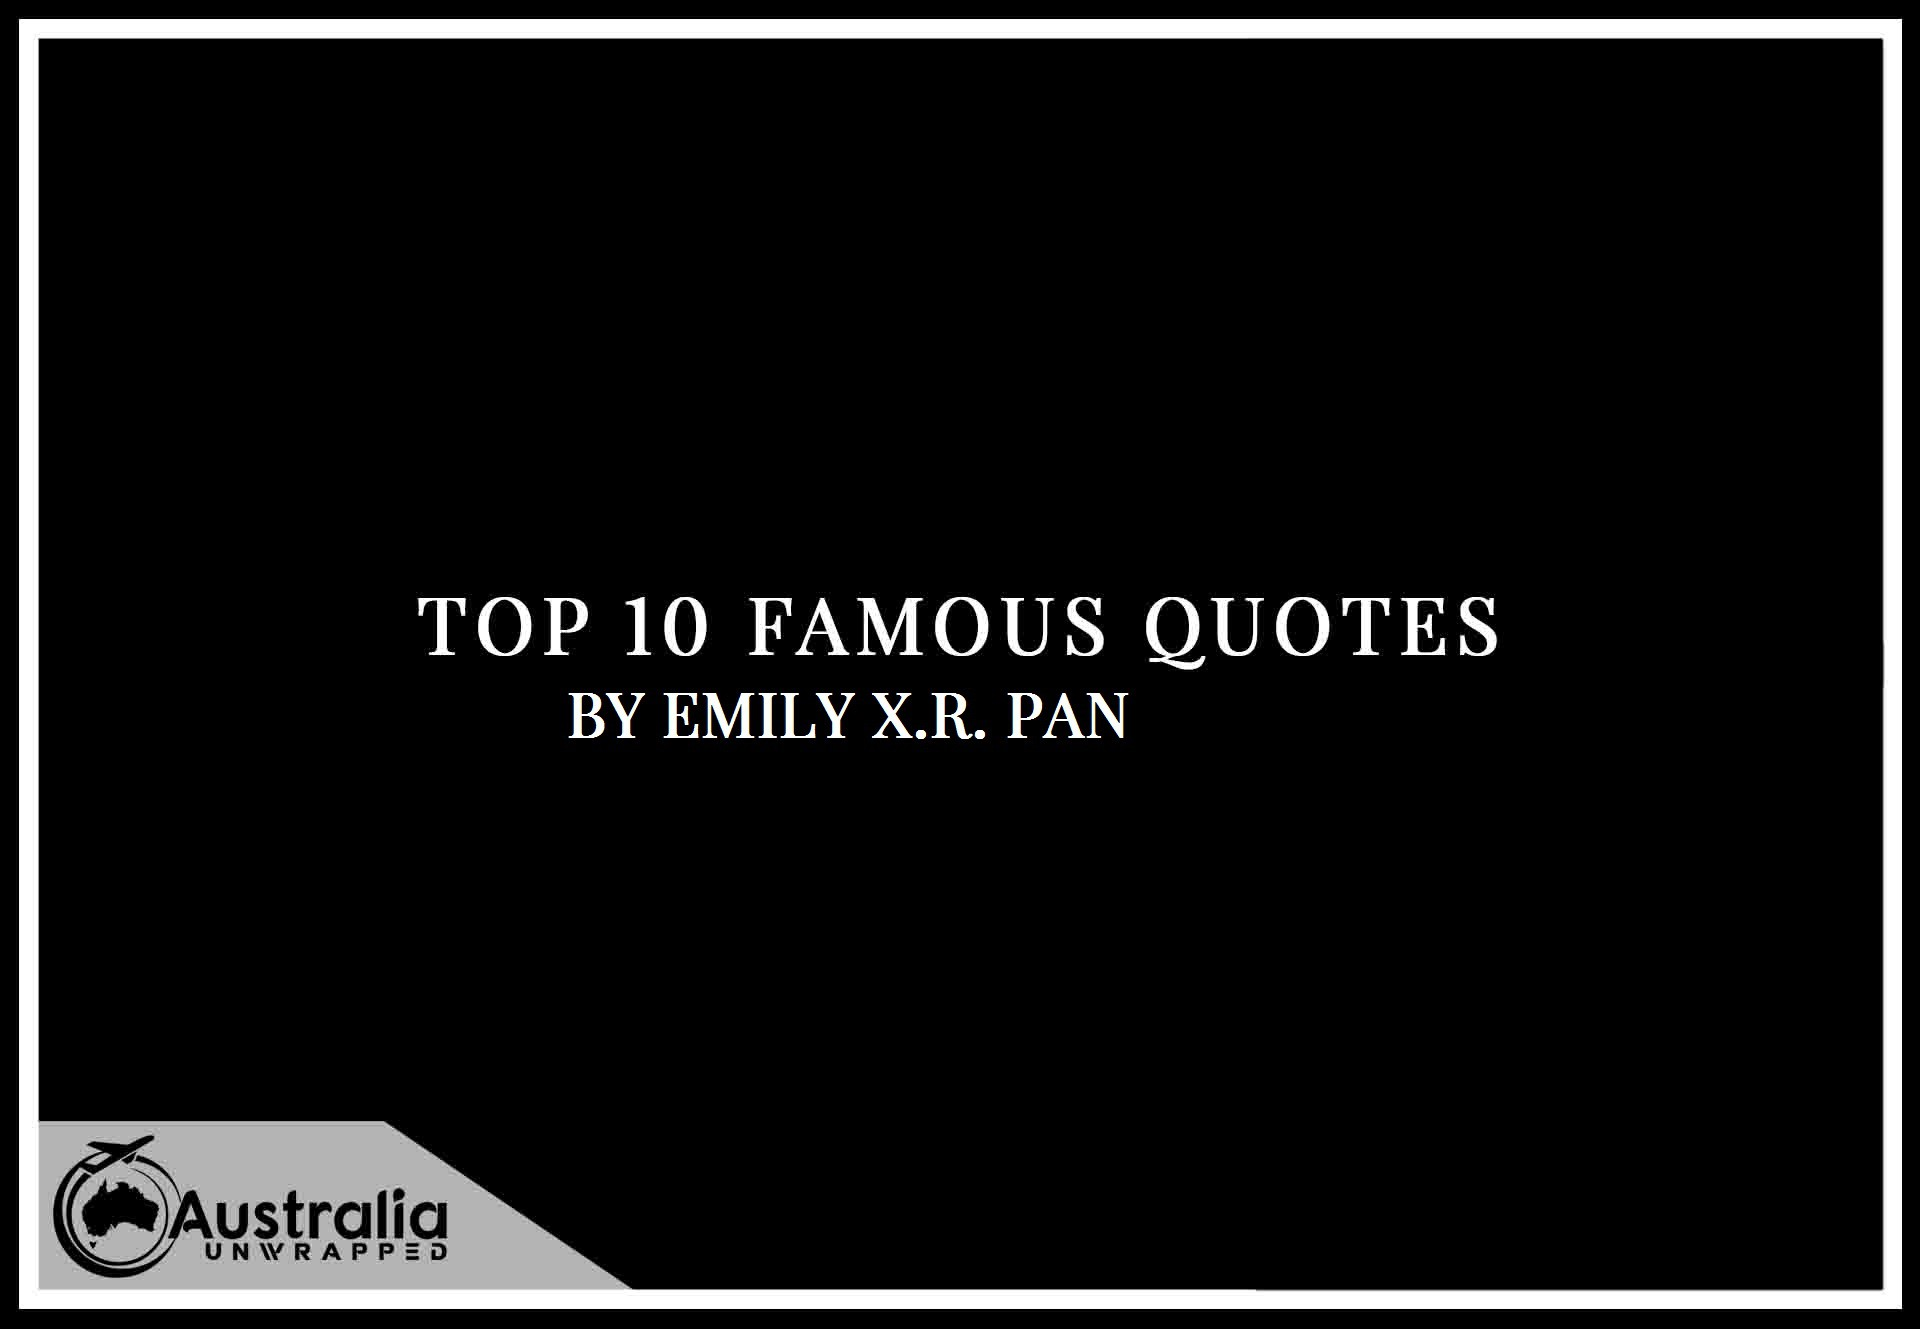 Emily X.R. Pan's Top 10 Popular and Famous Quotes